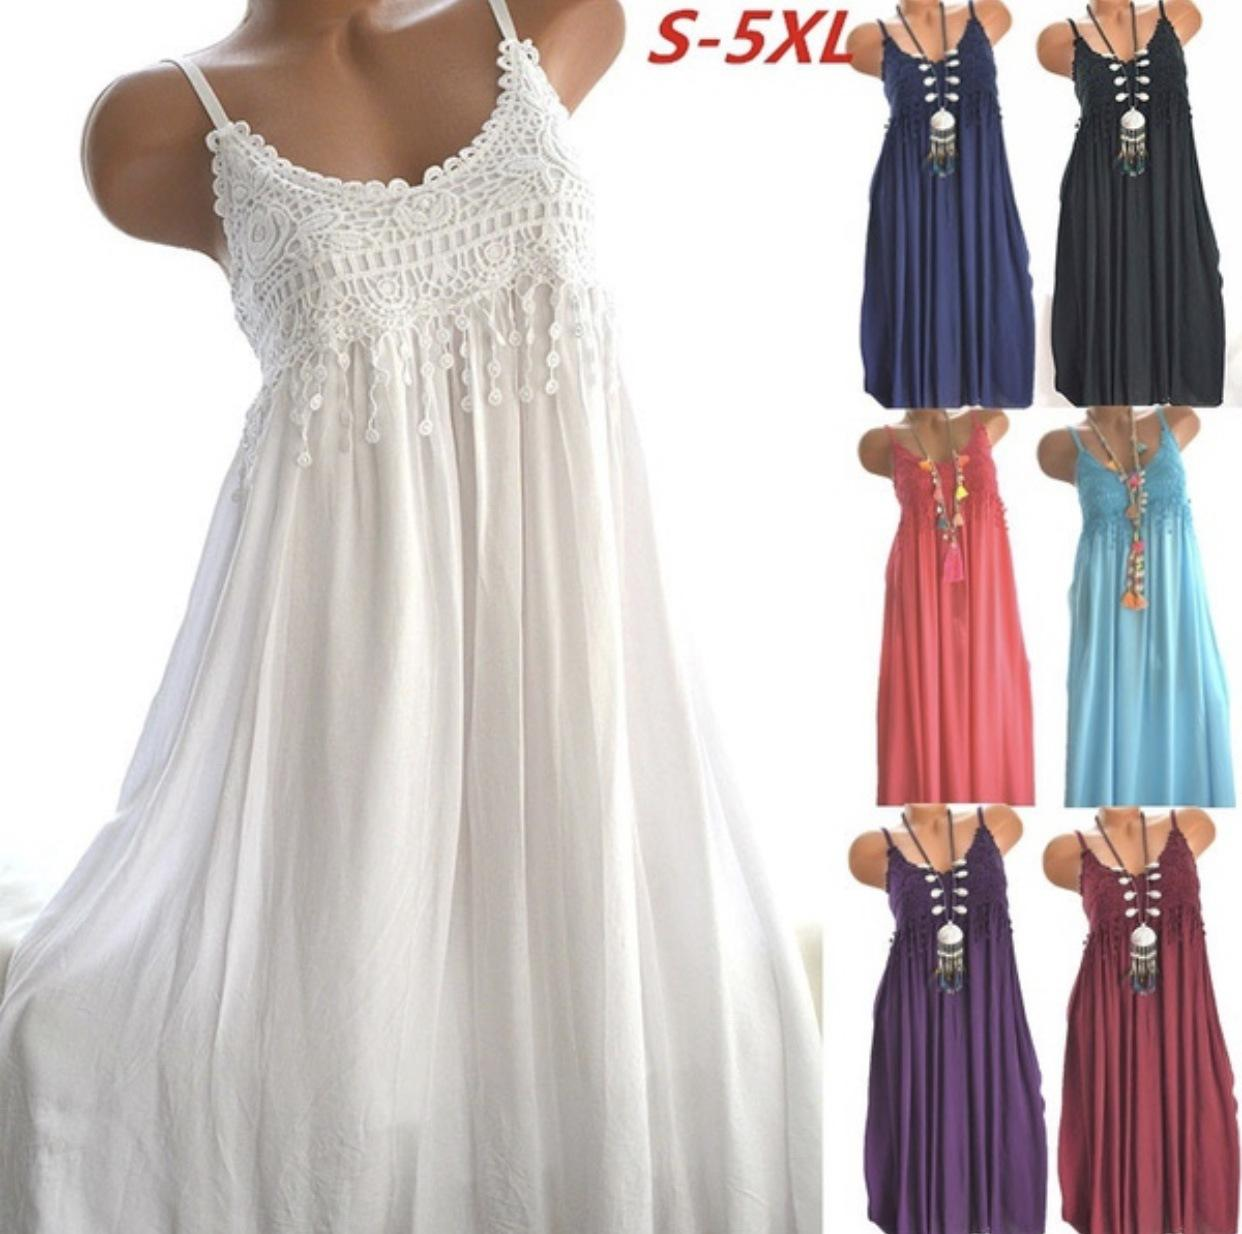 224a5e5ce QuickSelling Wish Amazon Sells Blockbuster Sexy Lace Suspenders With Long  Dresses In Seven Colors And Eight Yards In Stock Tight White Dresses For  Juniors ...